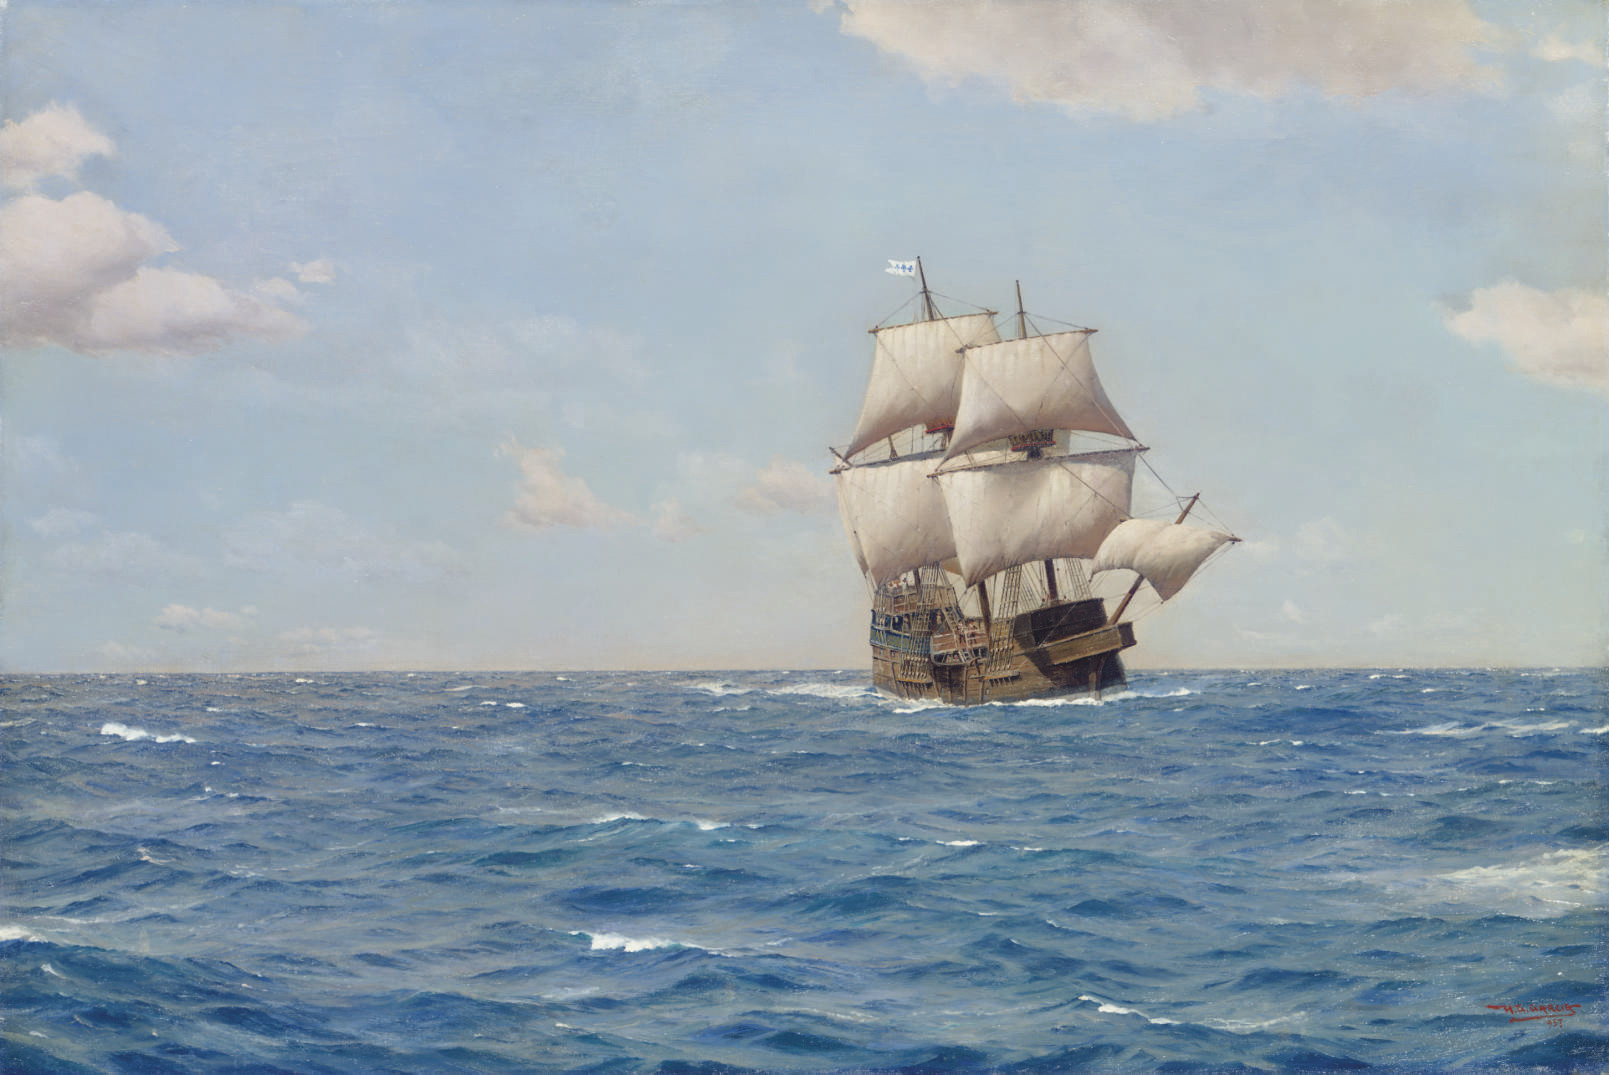 Mayflower with Pilgrim in the Atlantic, year 1620